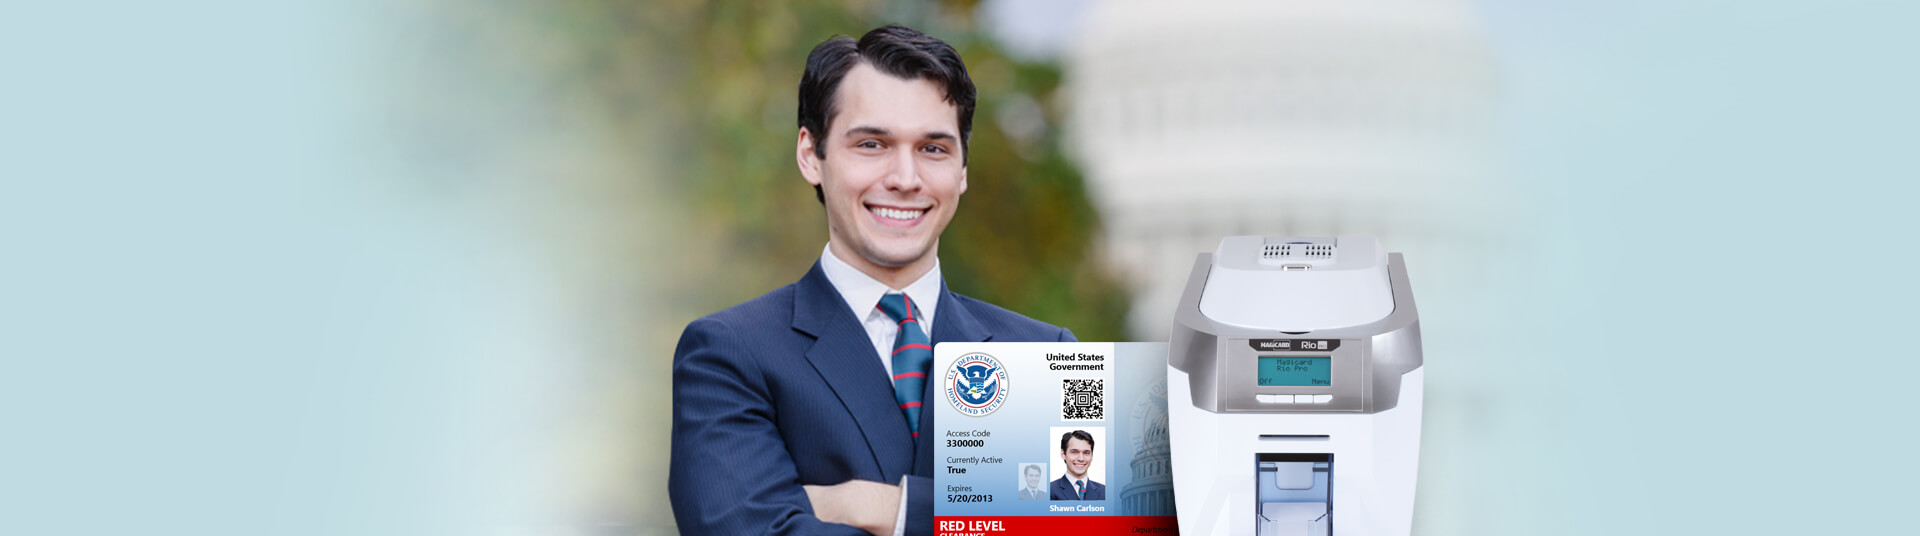 Government ID Cards for Access Control